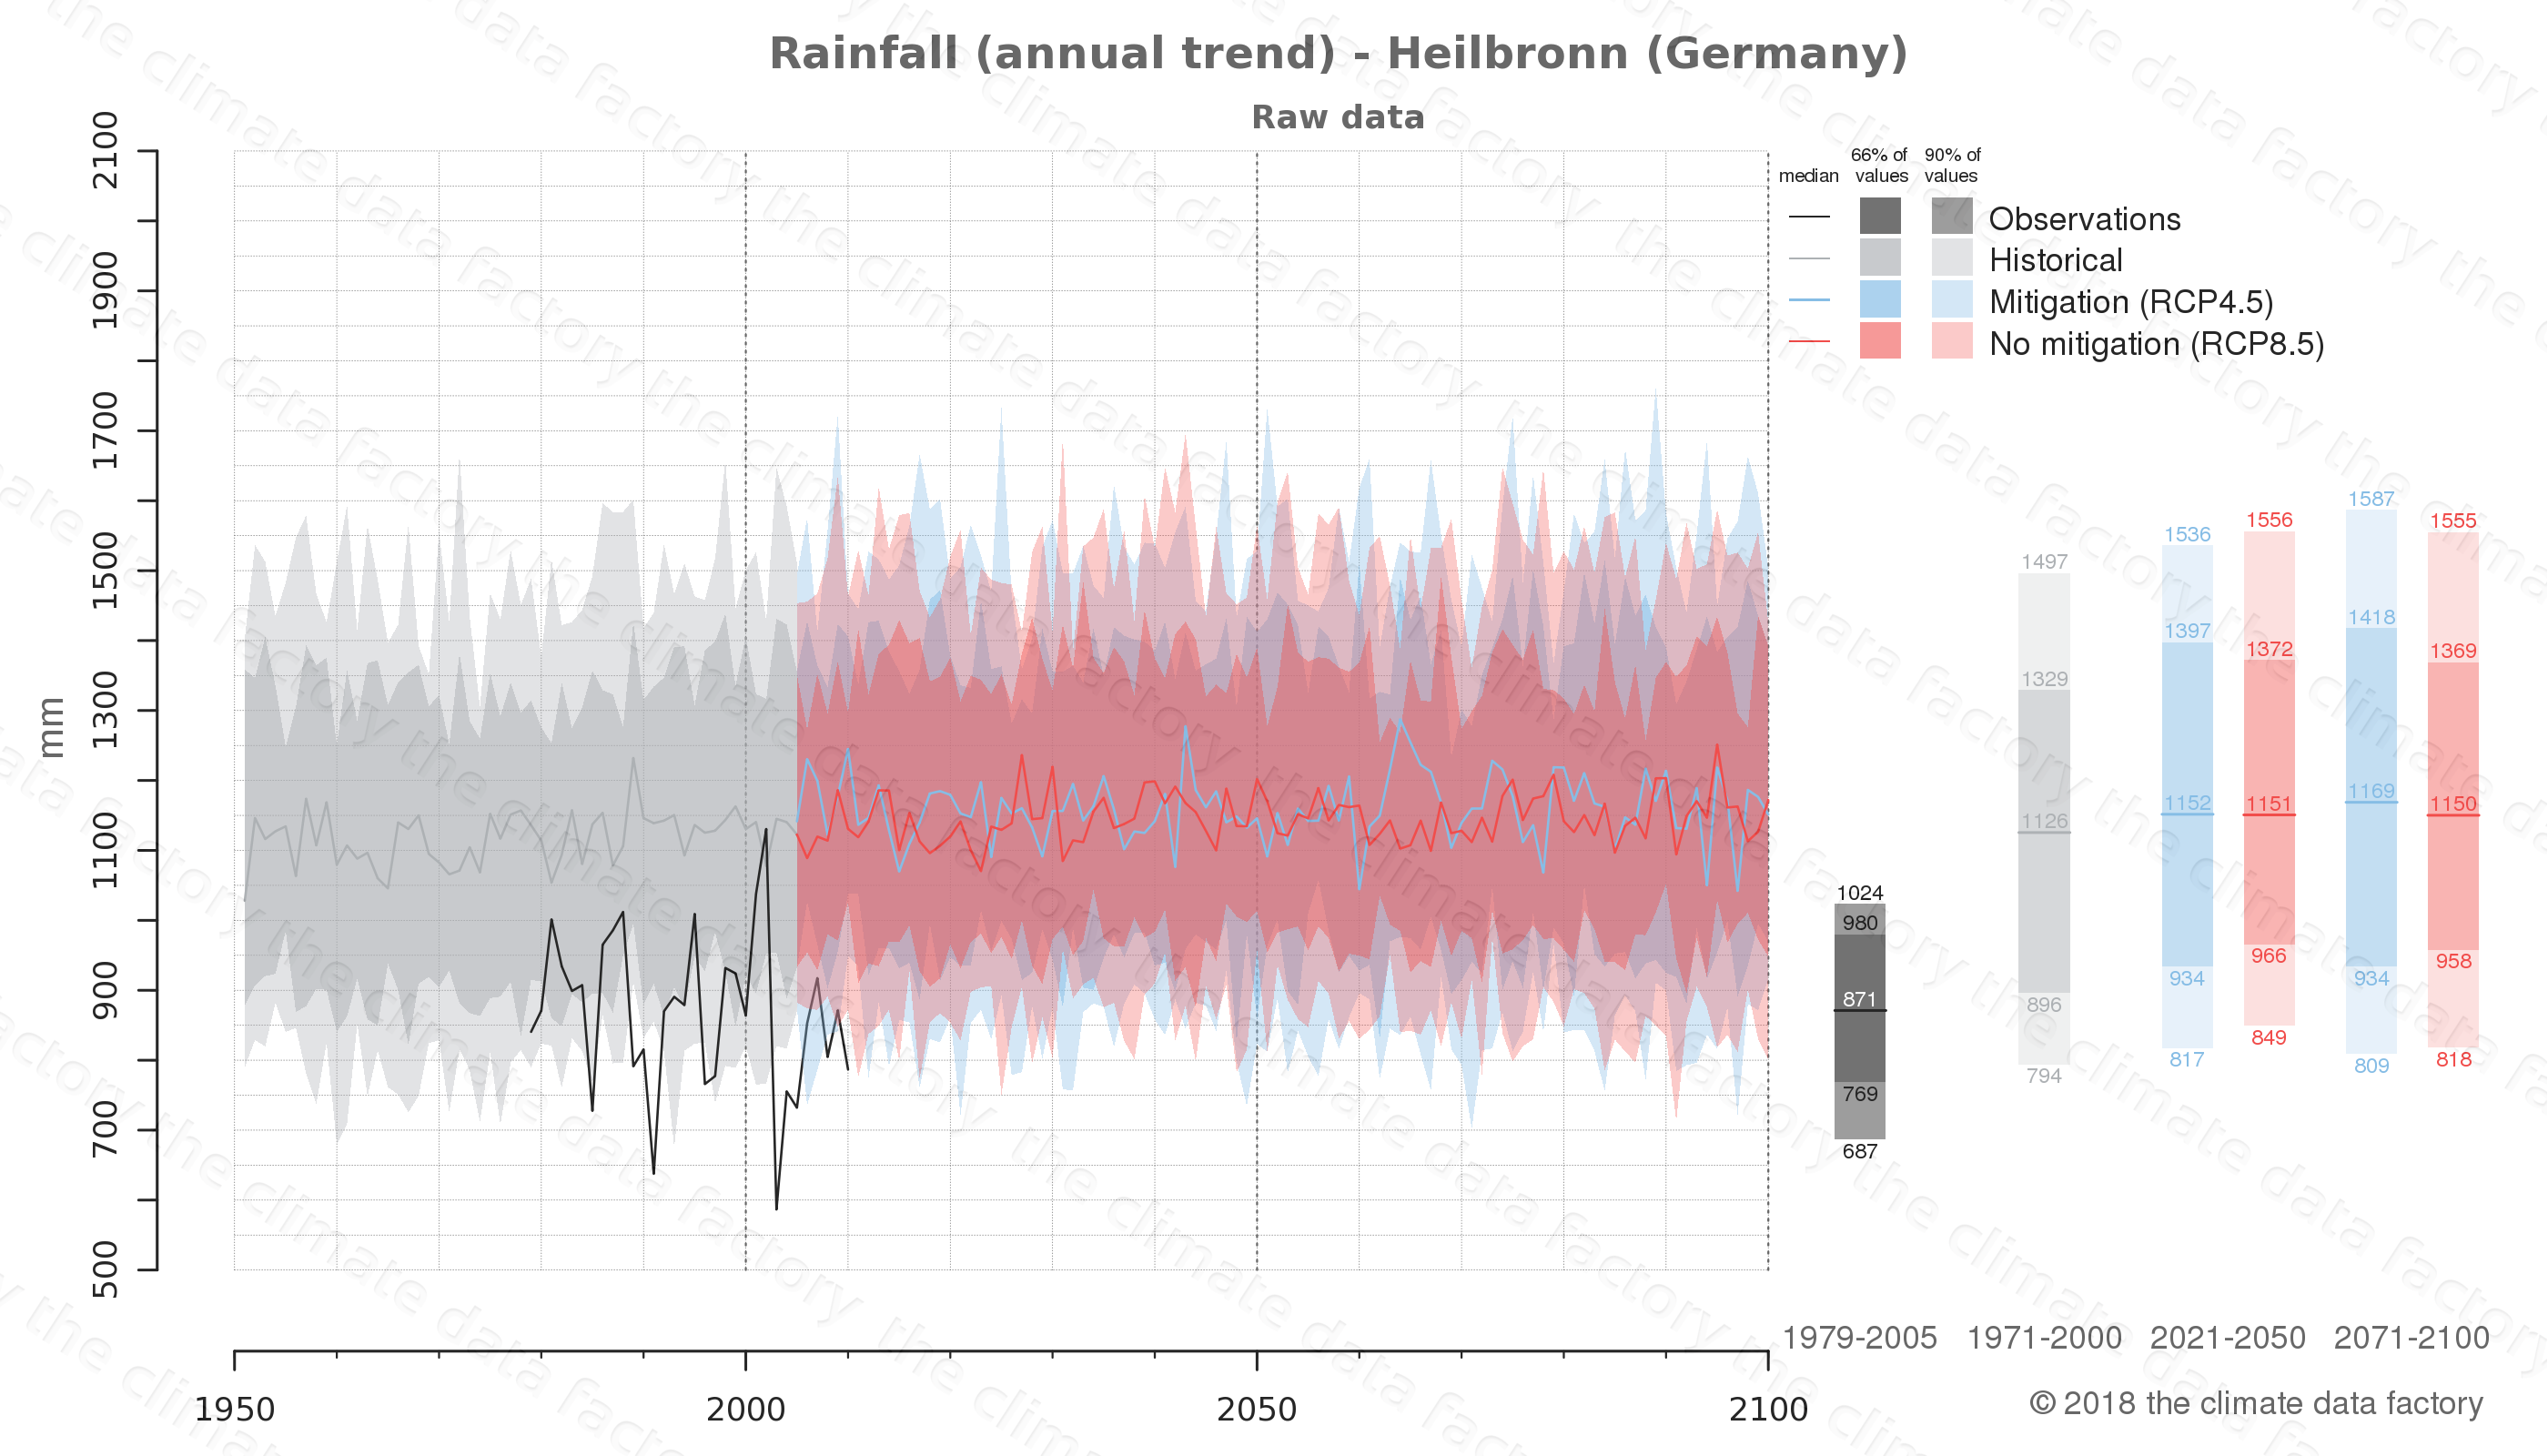 climate change data policy adaptation climate graph city data rainfall heilbronn germany